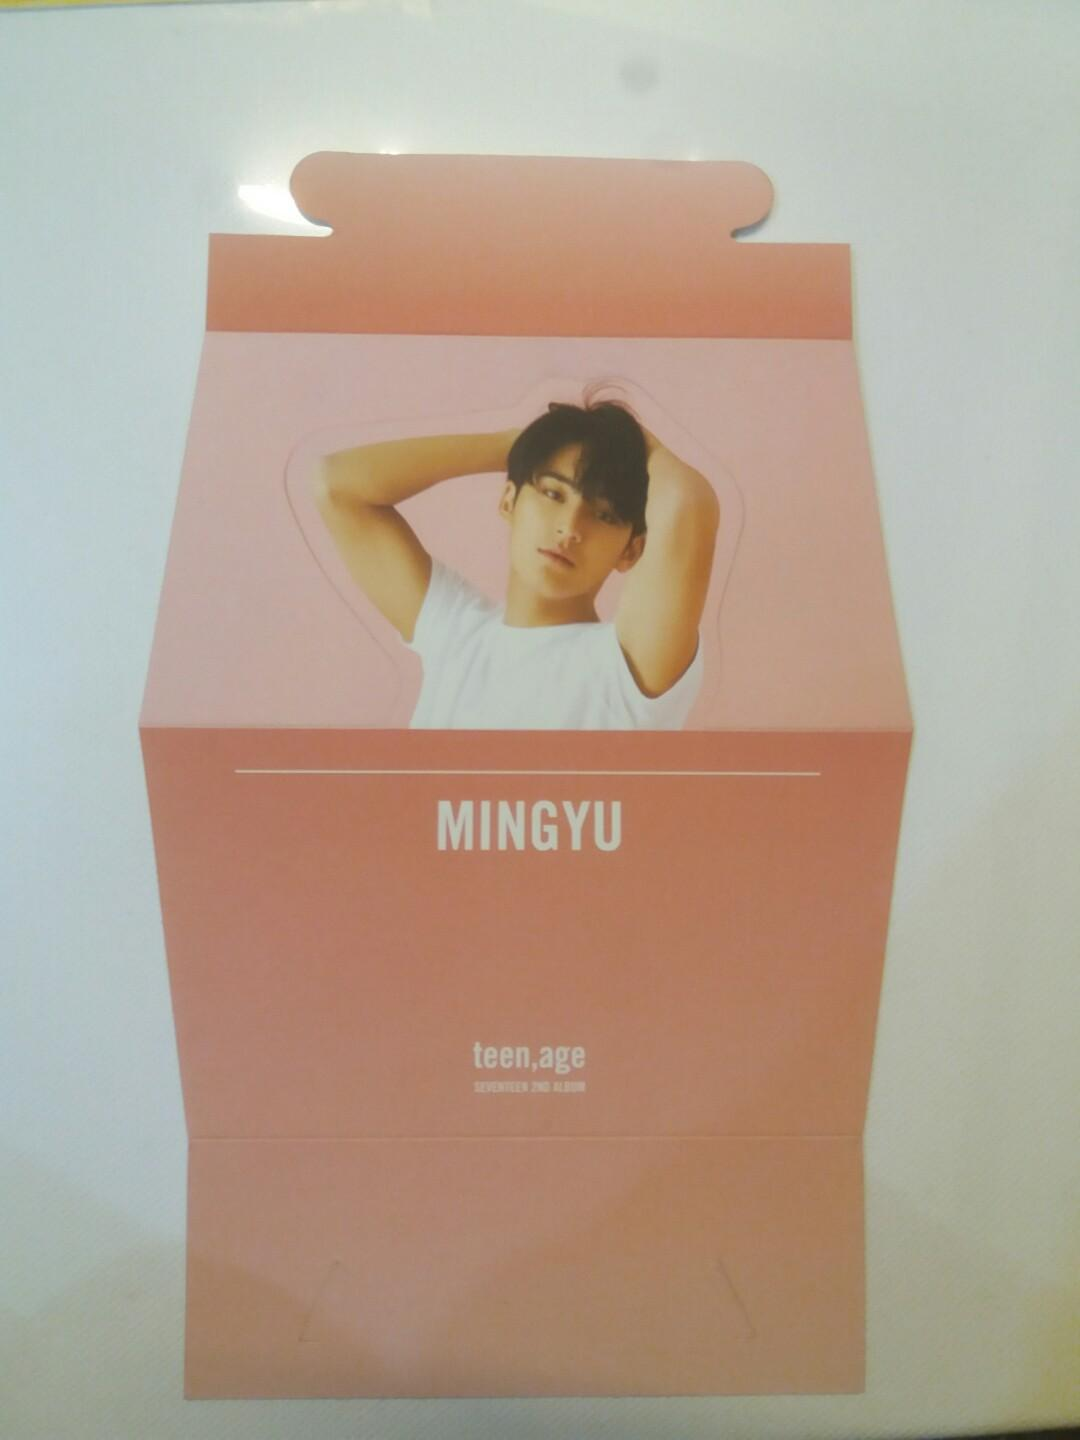 [WTS] OFFICIAL MINGYU STANDEE TEEN AGE SEVENTEEN 2ND ALBUM